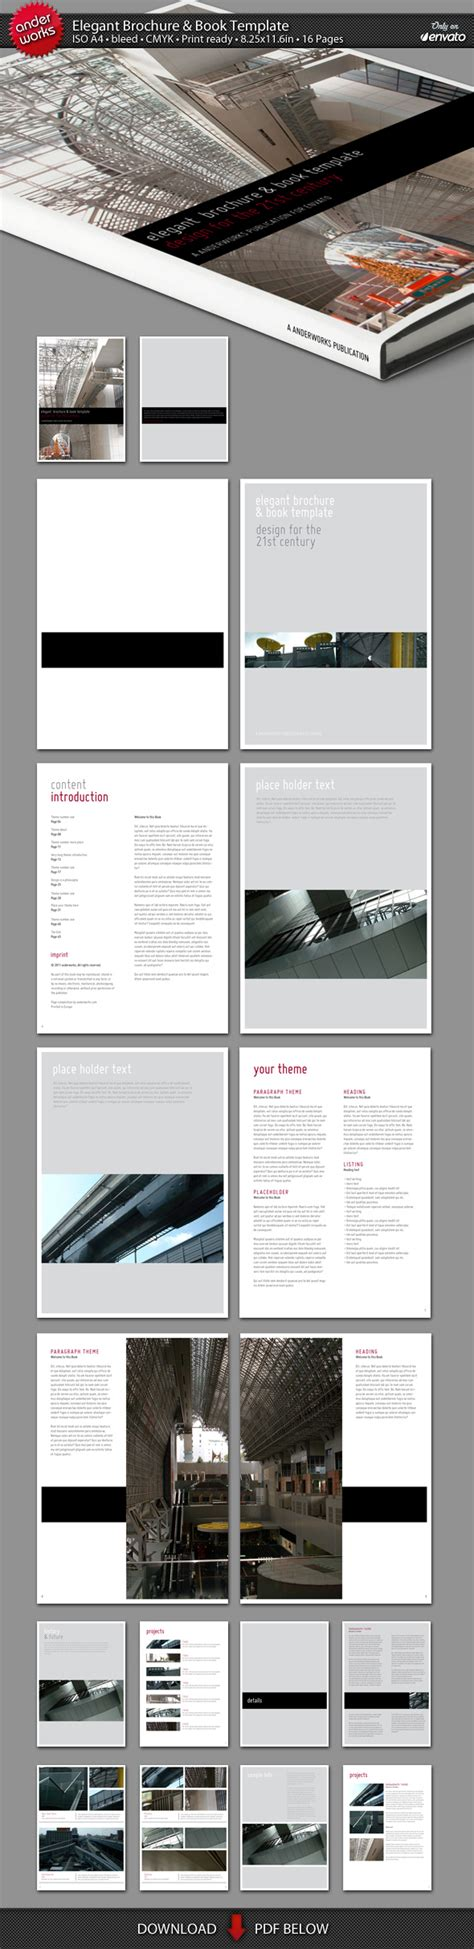 elegant brochure book template by isoarts2 on deviantart